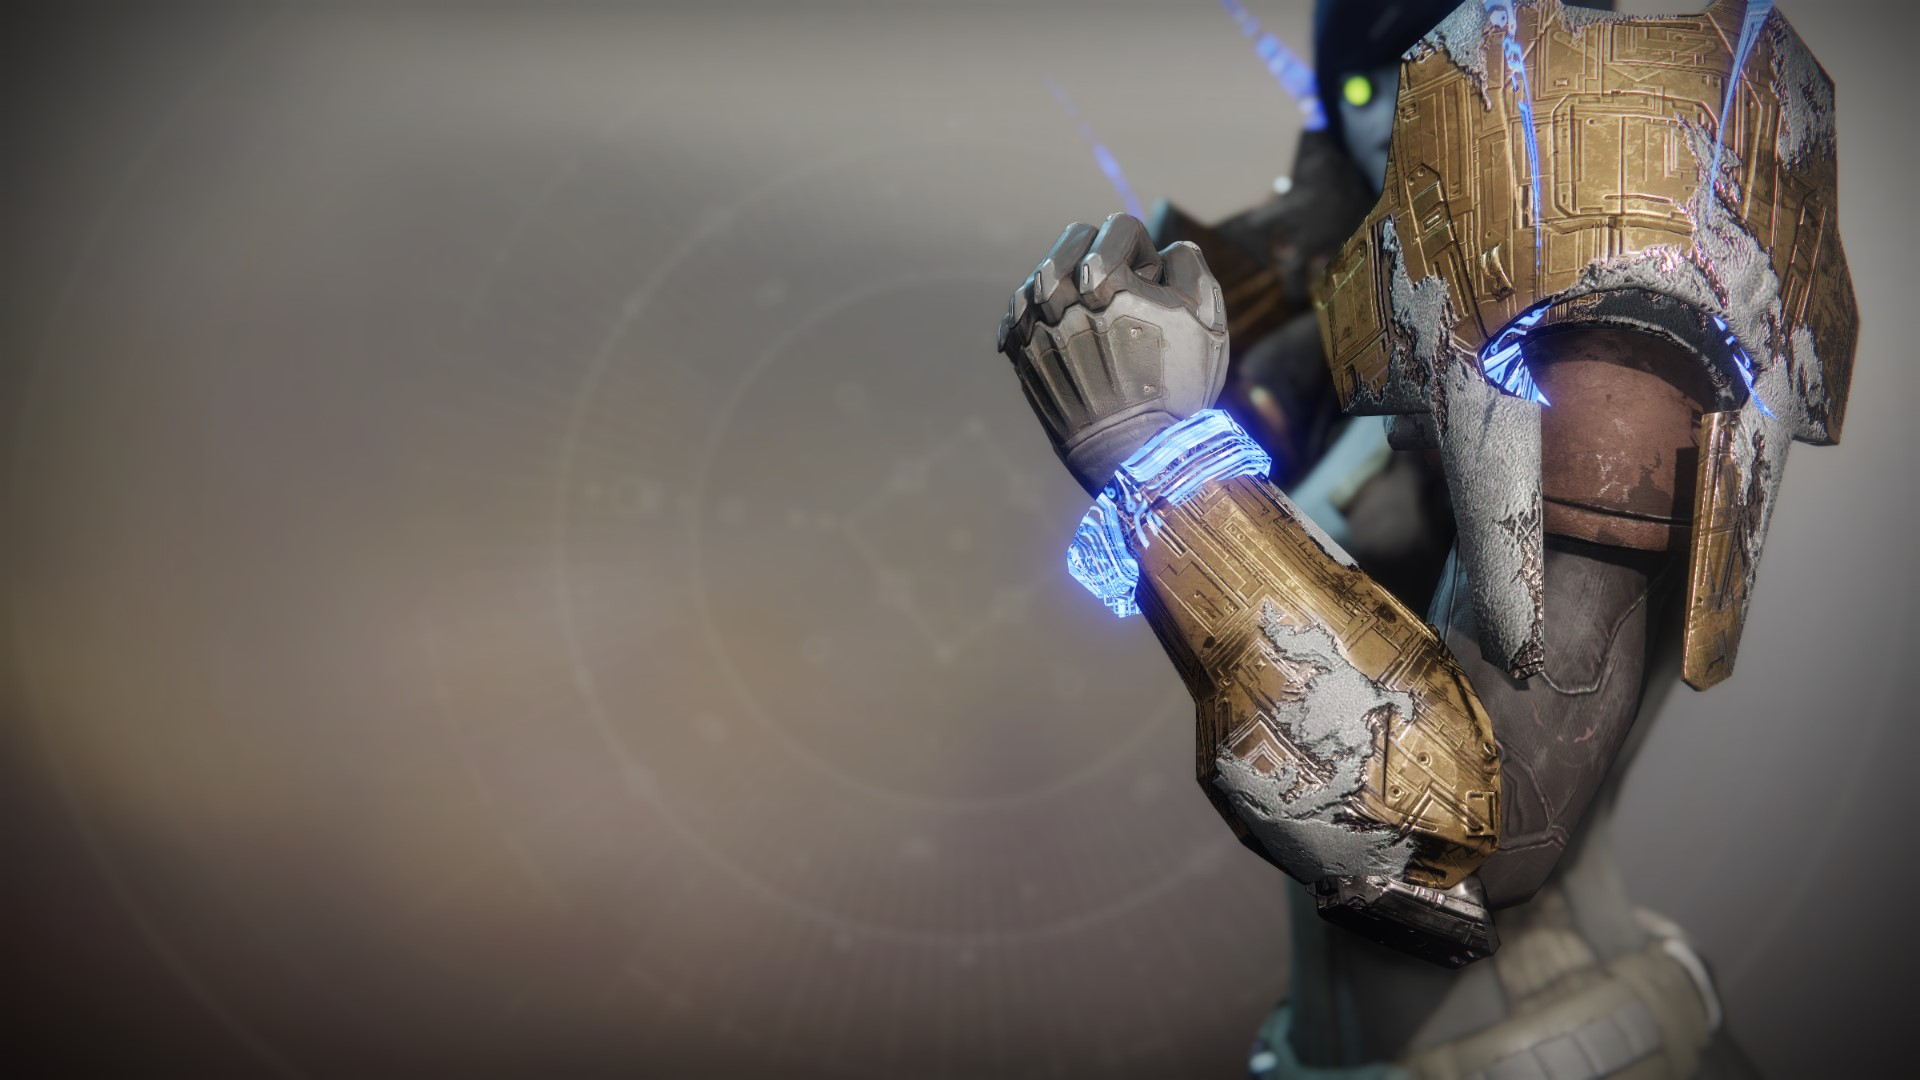 An in-game render of the Gauntlets of Exaltation.